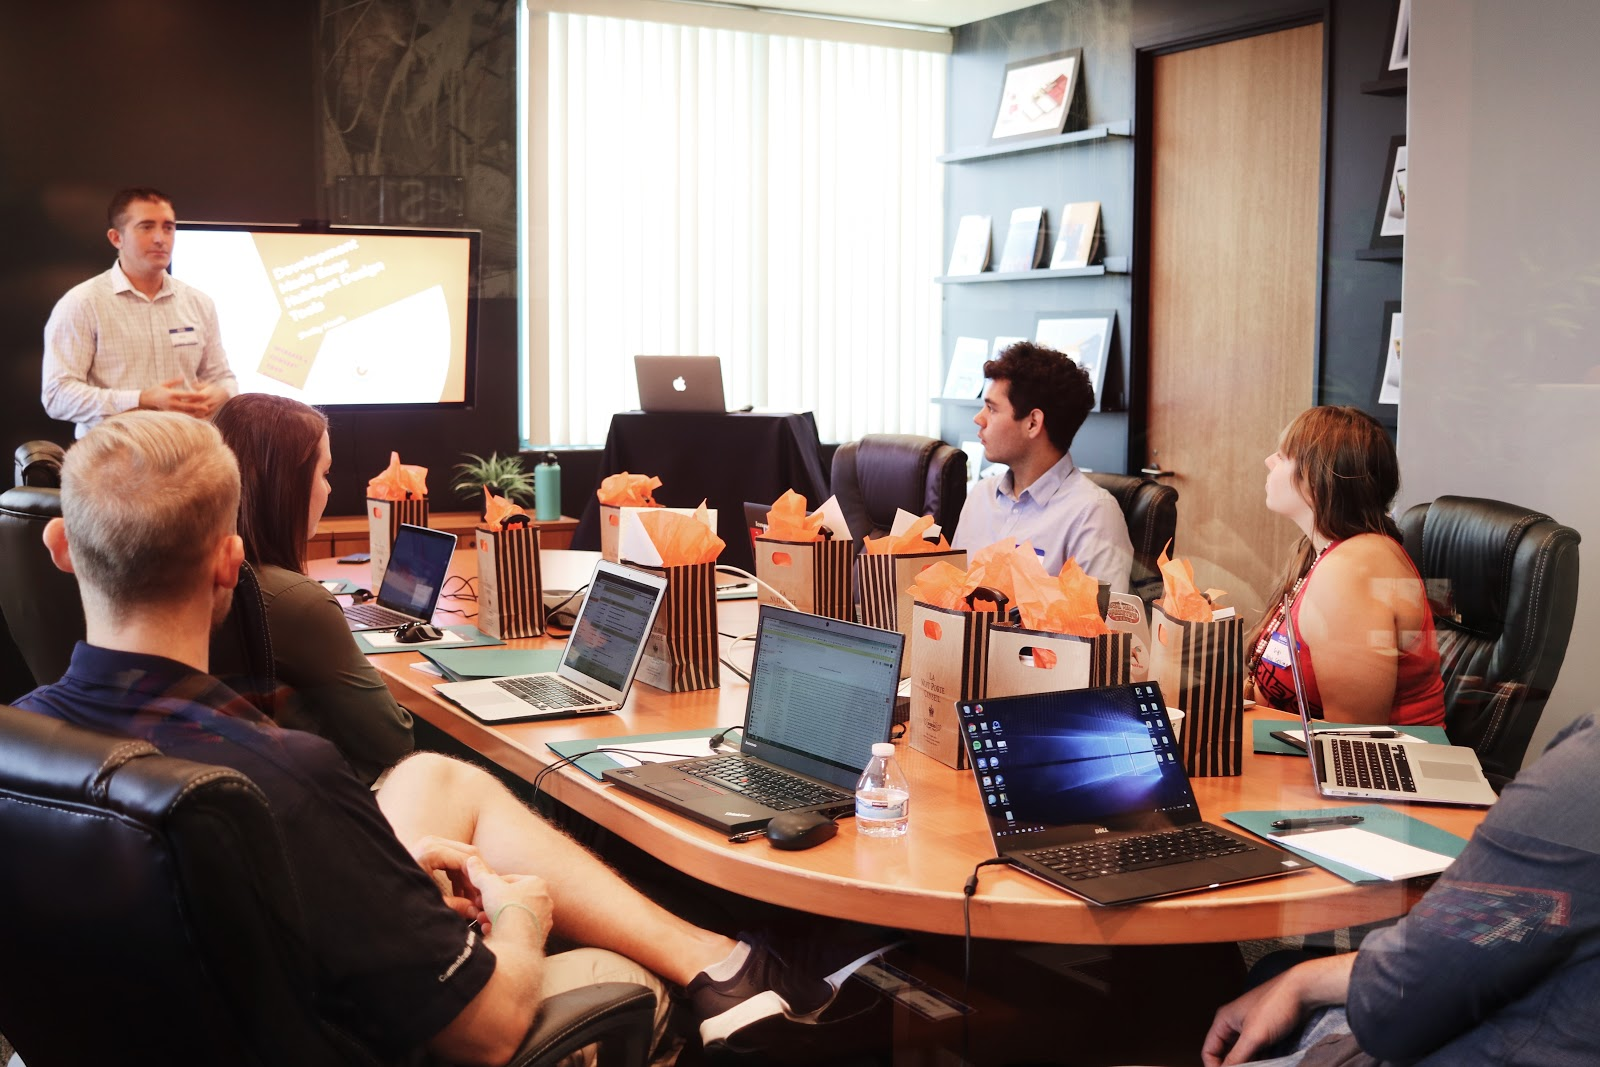 How to start a nonprofit: A board of directors meeting